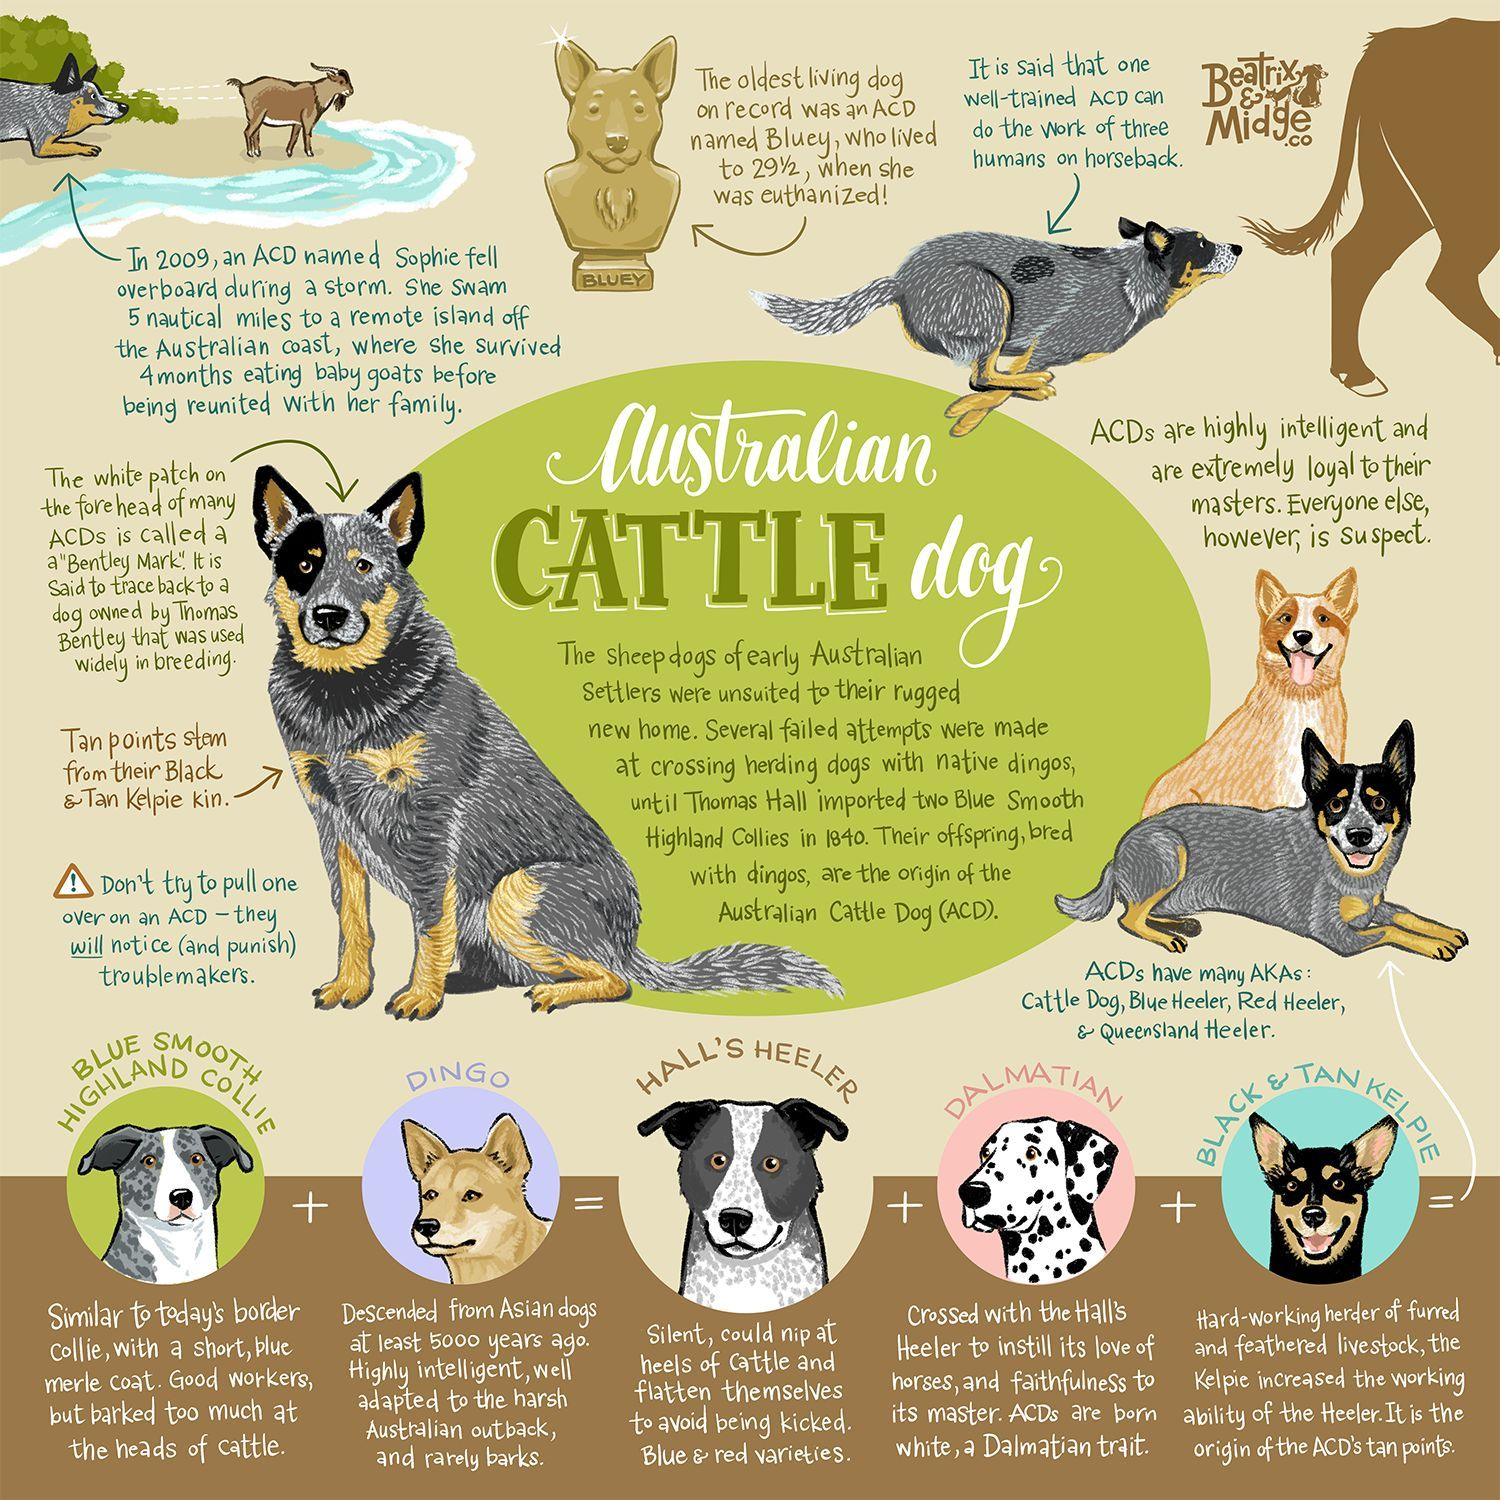 Australian Cattle Dogs—also known as Blue Heelers, Red